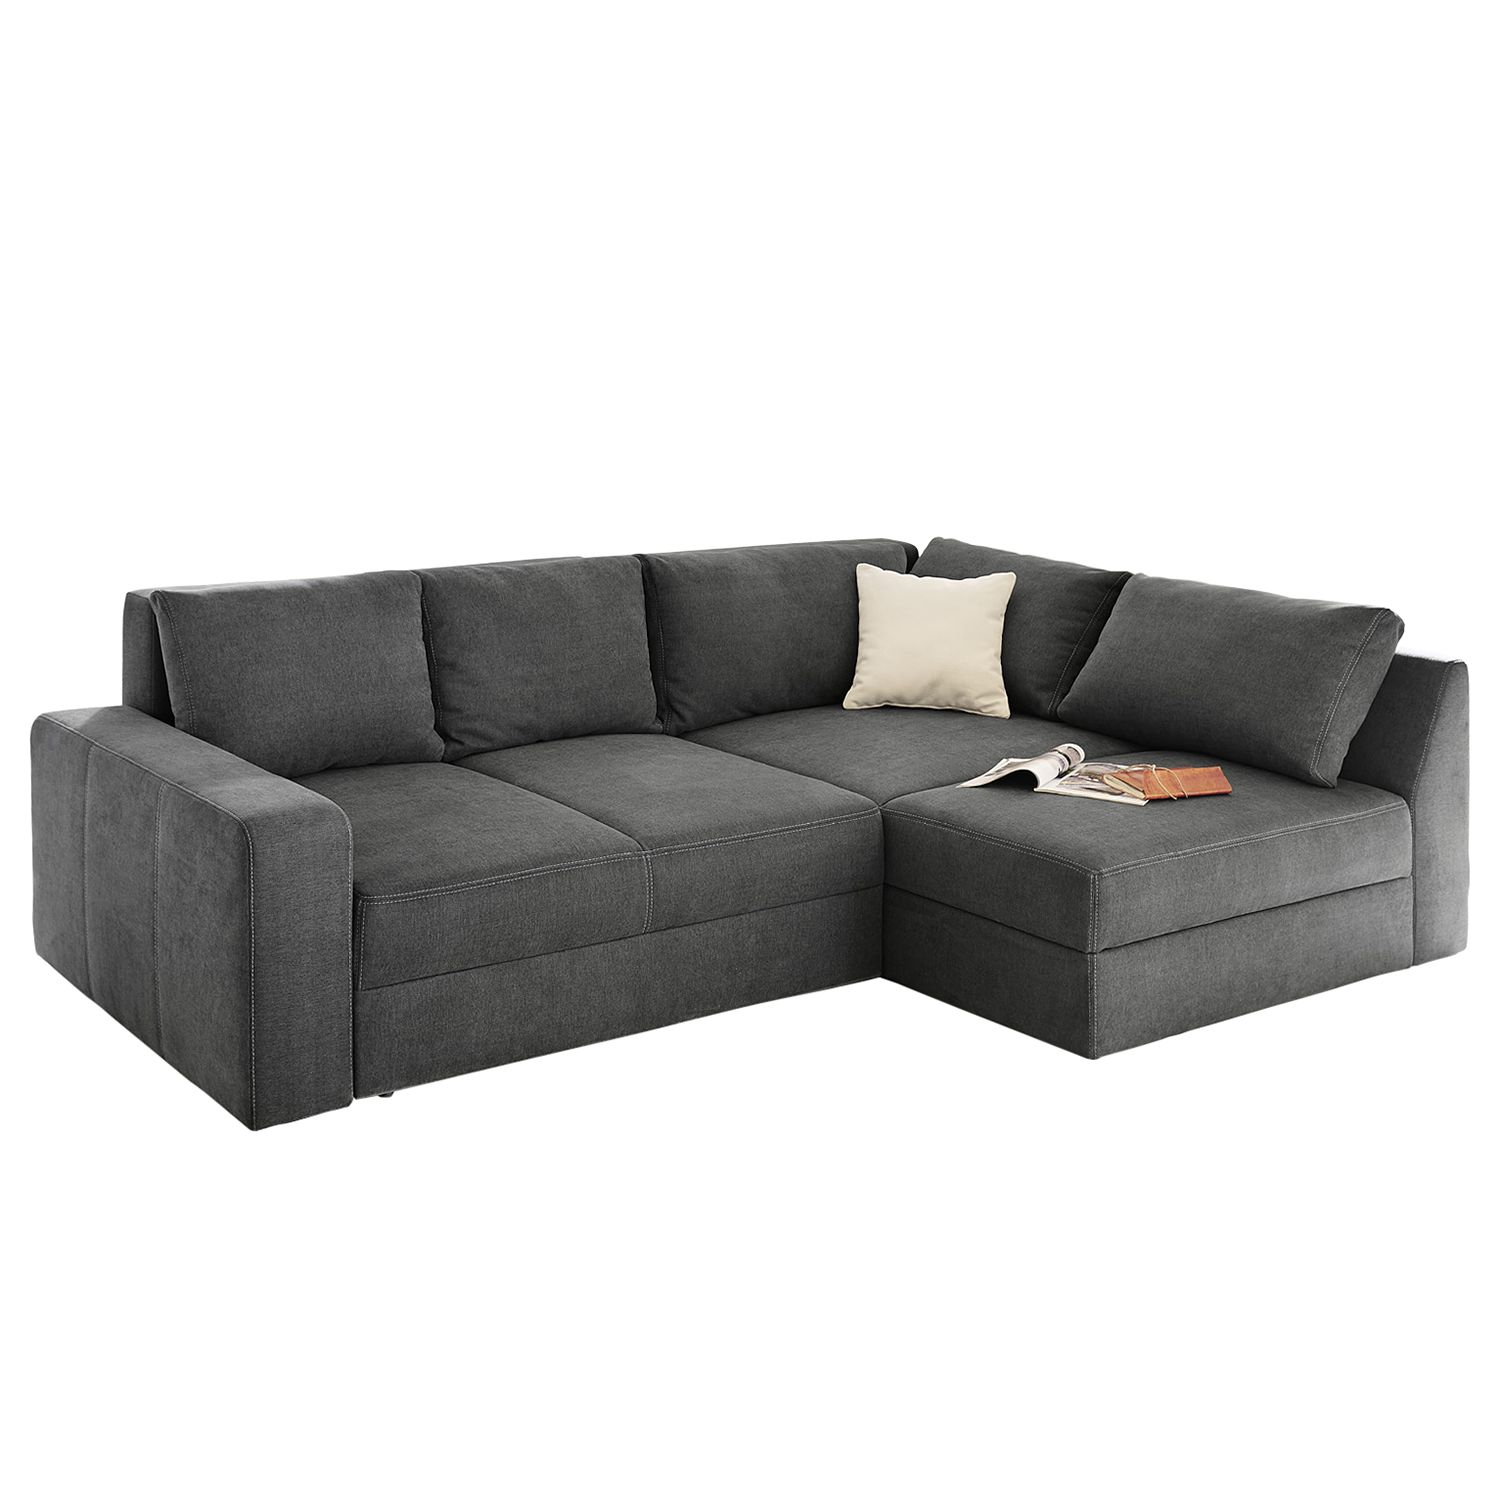 ecksofa mit schlaffunktion bei roller. Black Bedroom Furniture Sets. Home Design Ideas